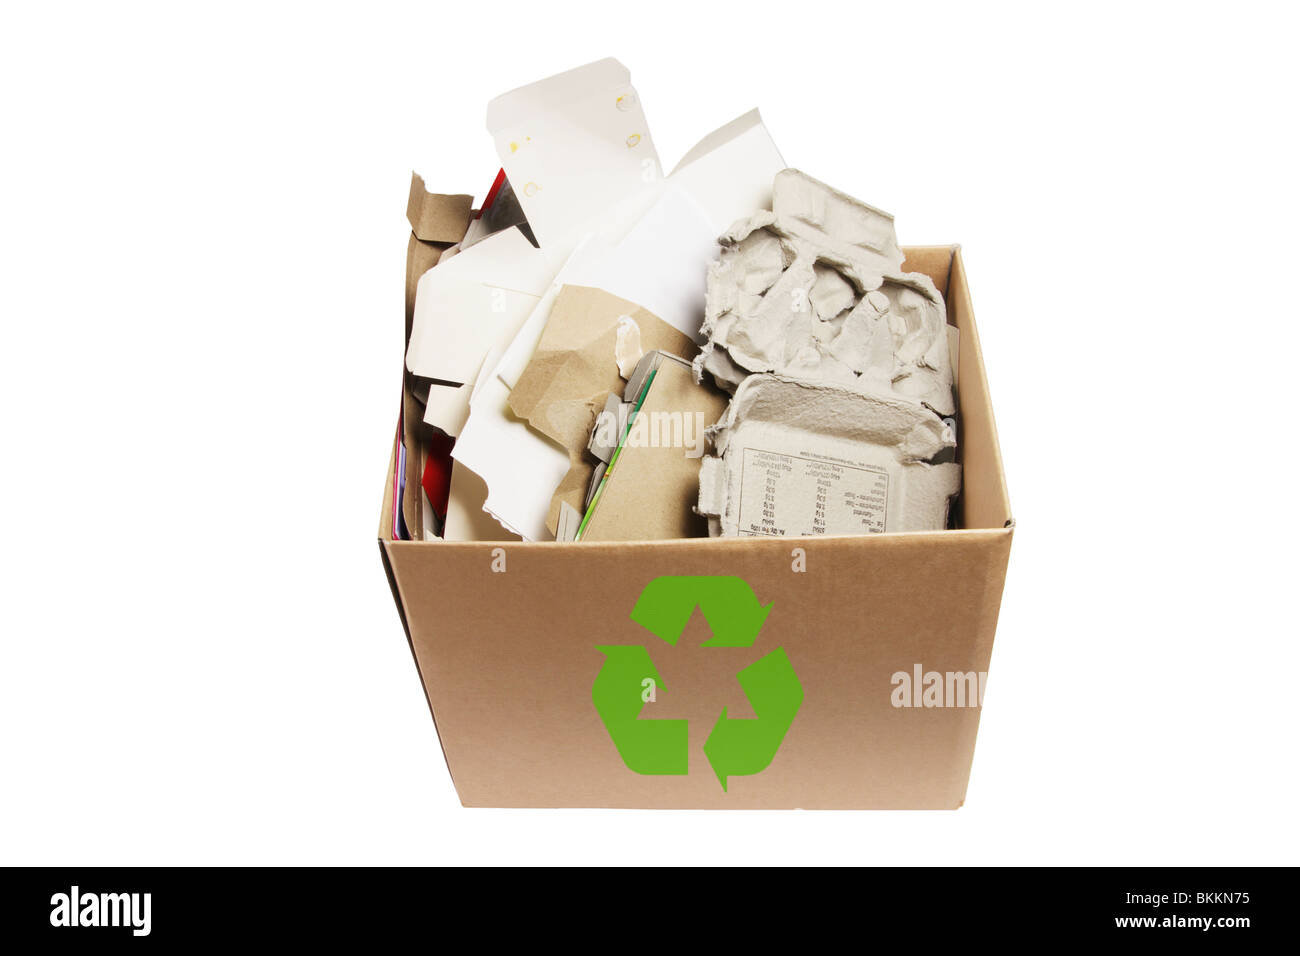 Paper Products for Recycle - Stock Image